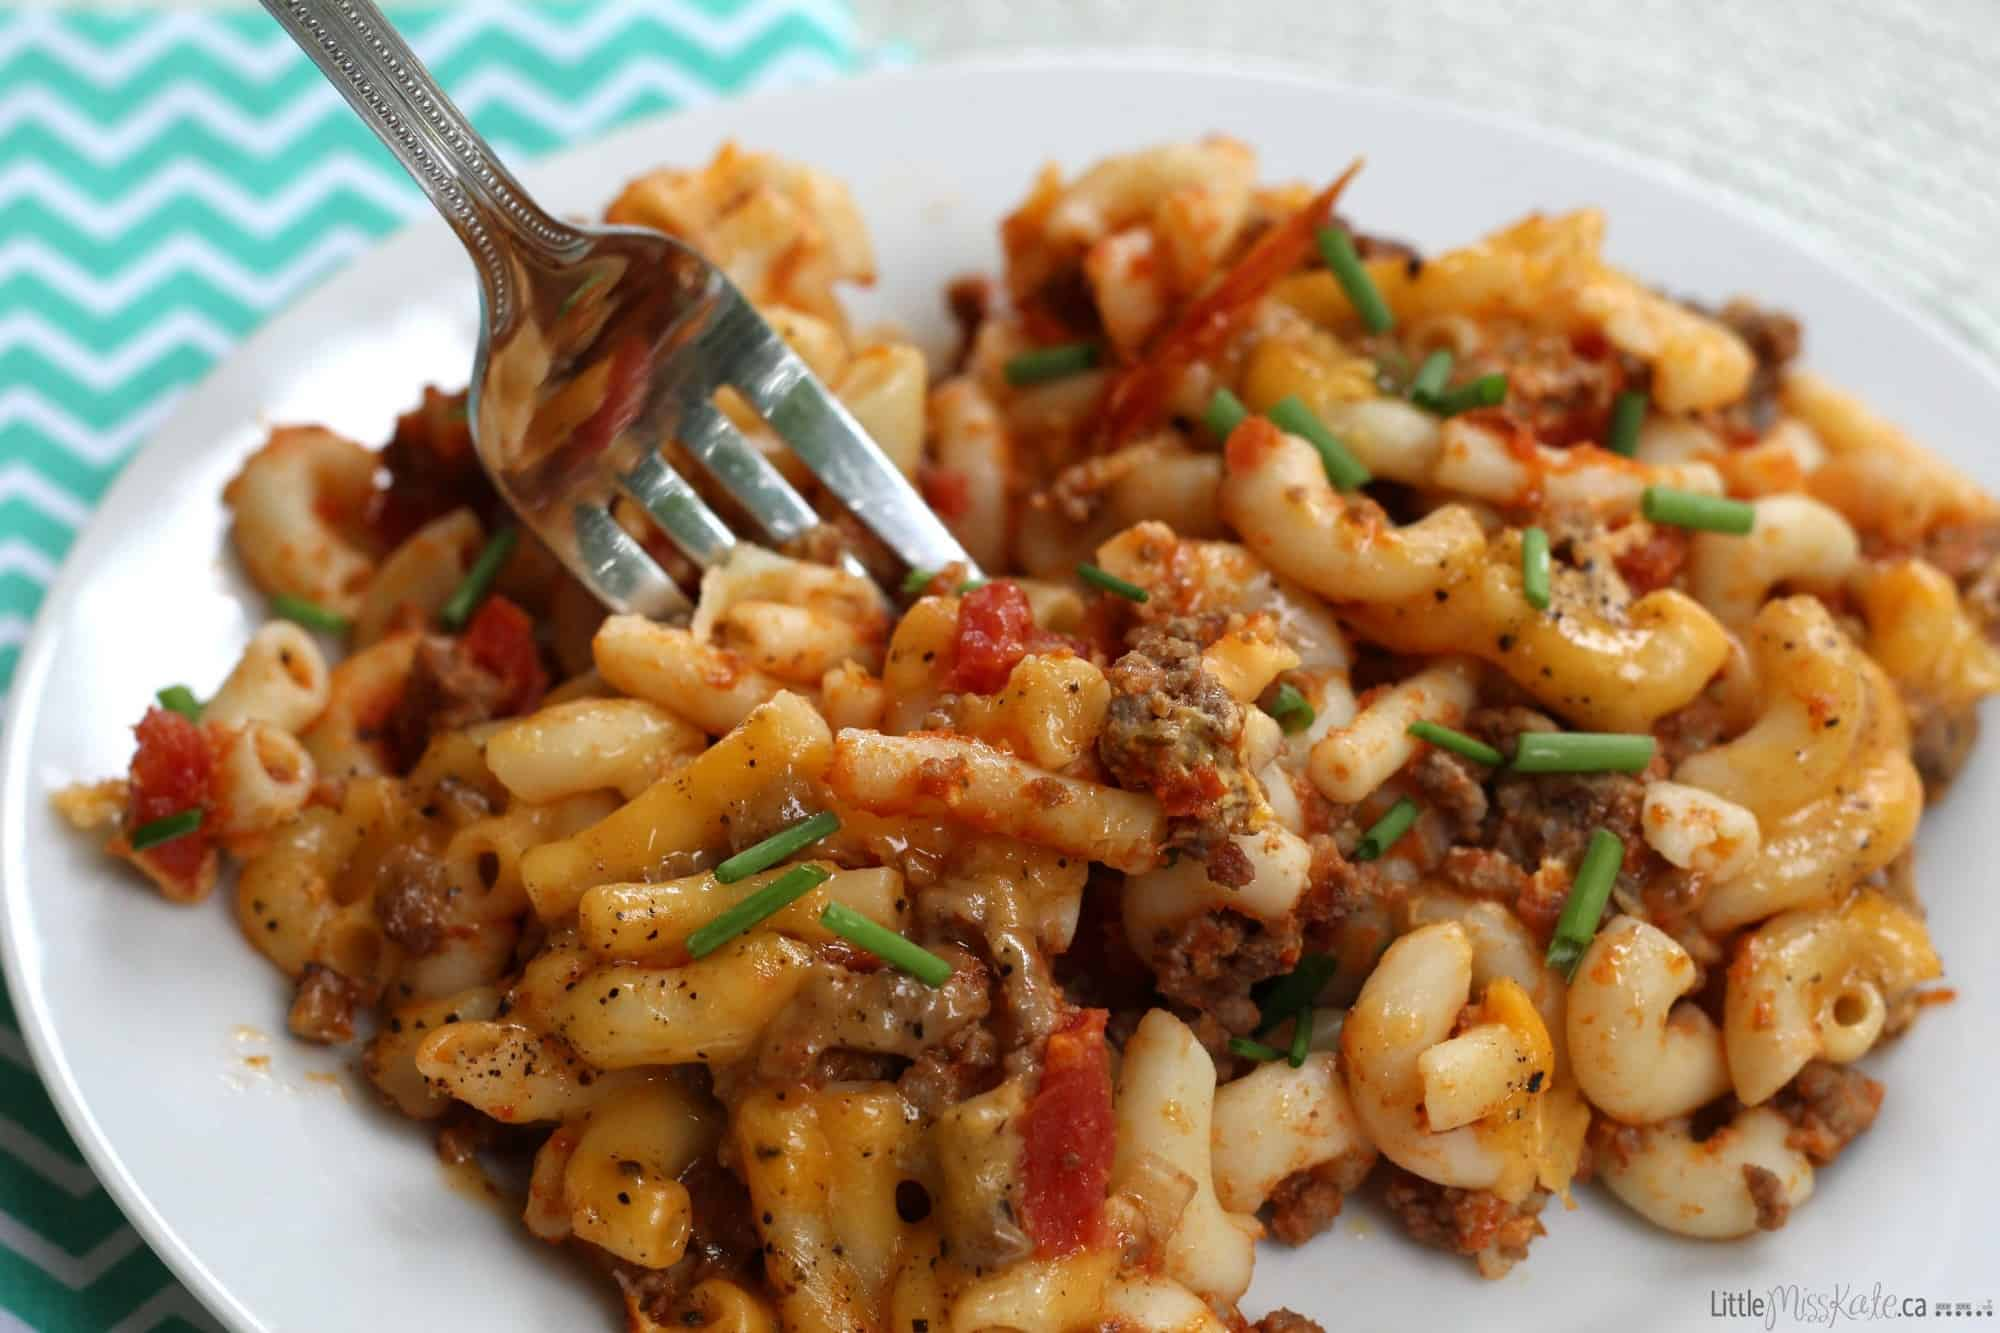 Homemade Macaroni and Cheese with Ground Beef Recipe via LittleMissKate.ca